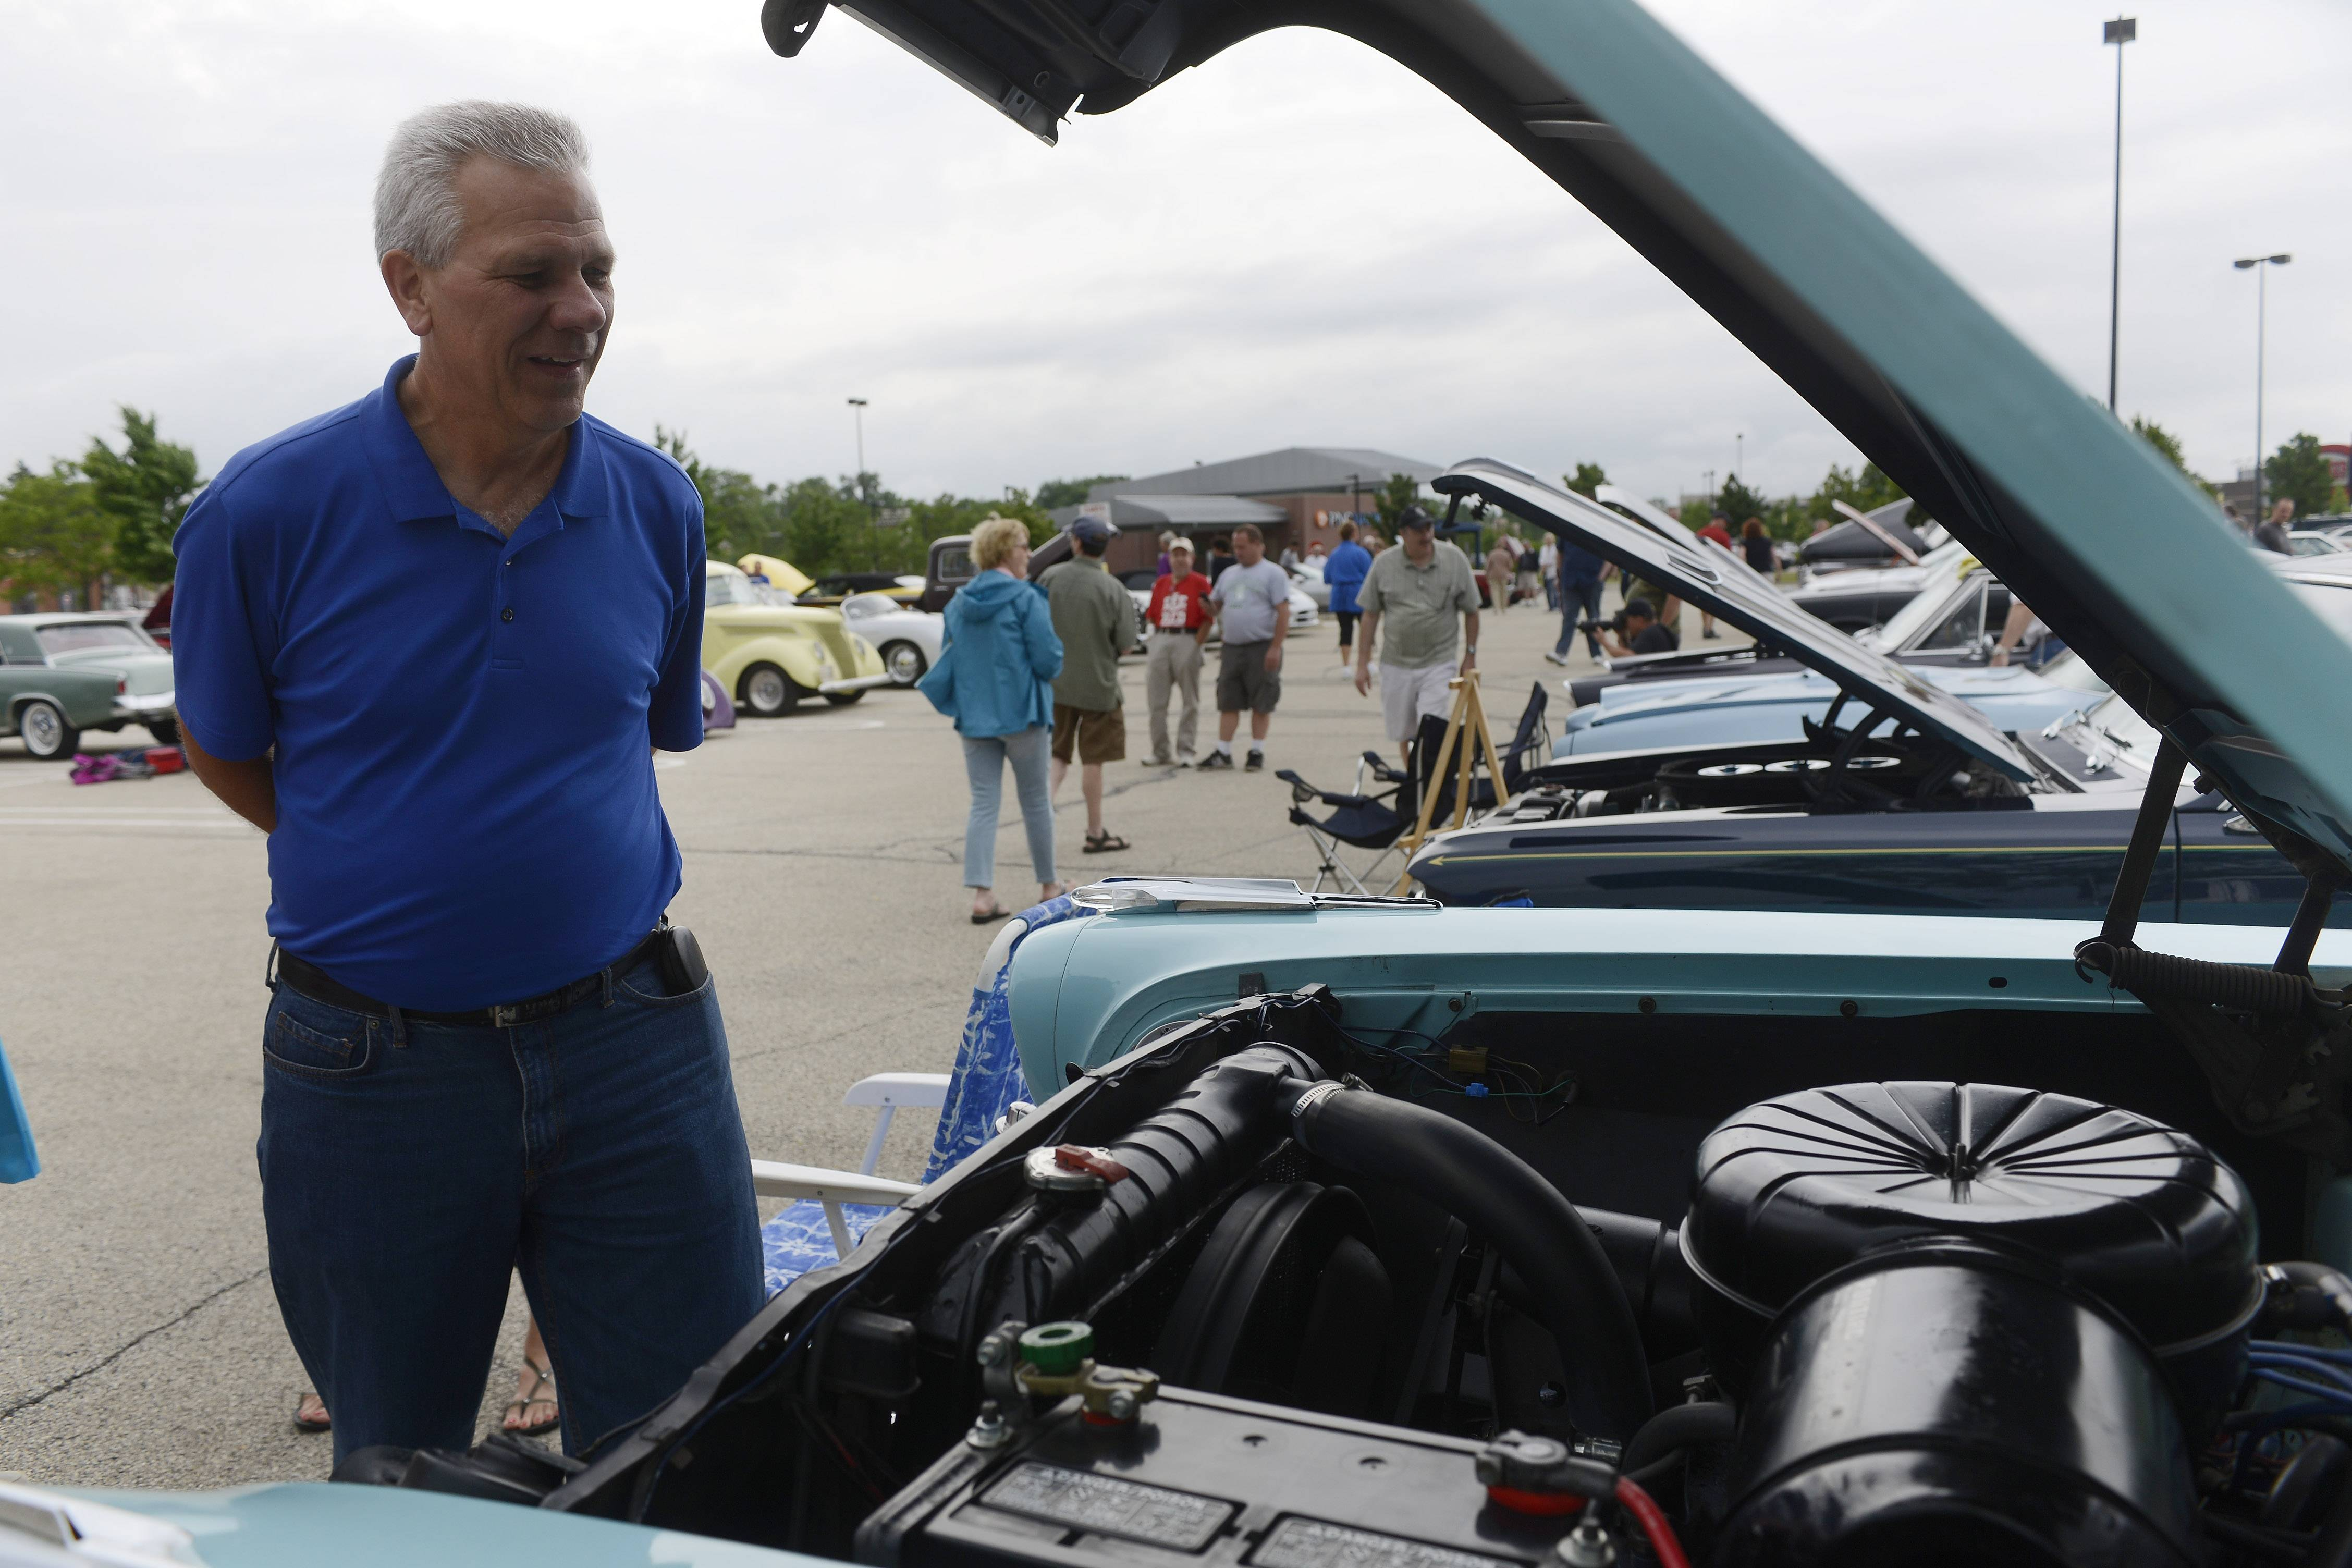 Tom Skipa of Arlington Heights views cars displayed during the Randhurst Village Cruise Night June 18 in Mount Prospect.